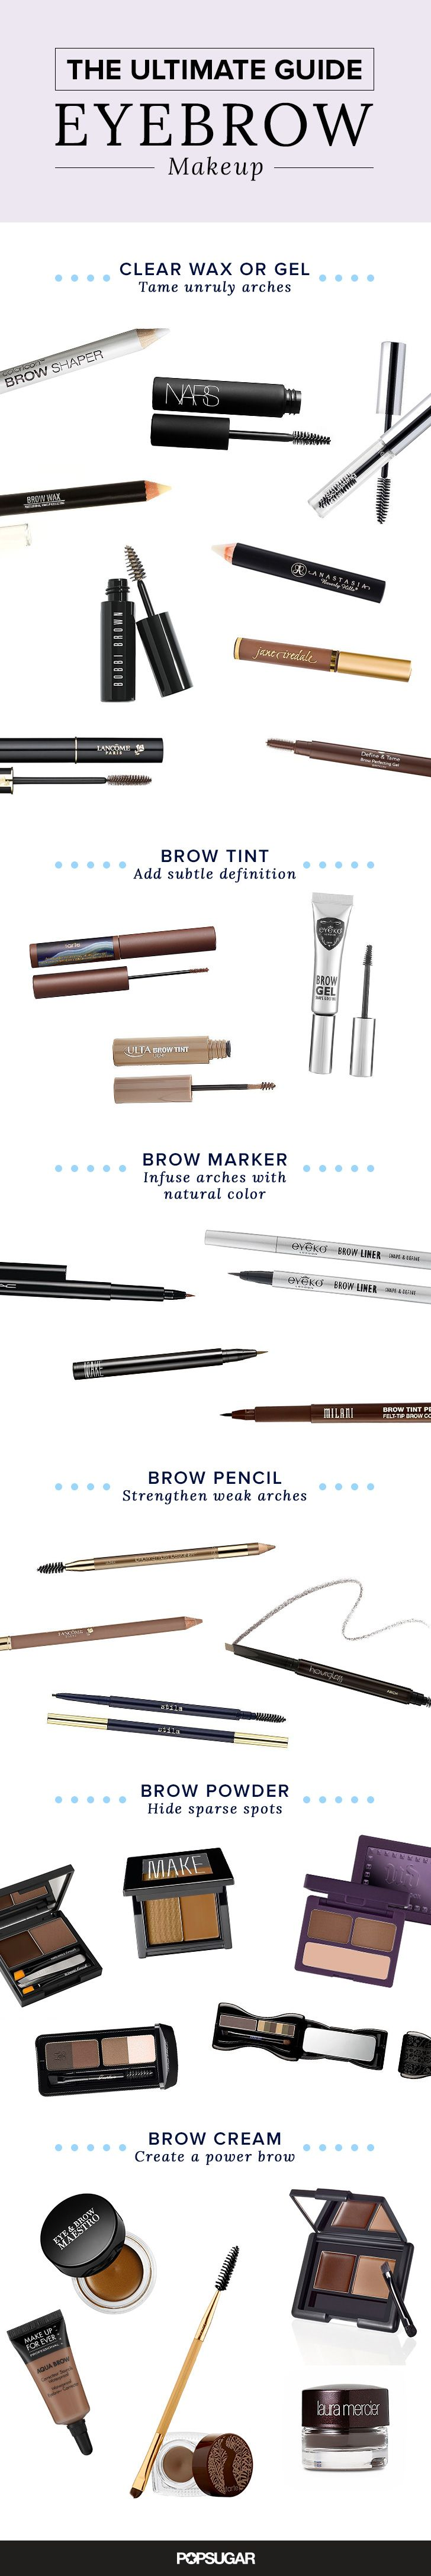 Want the best eyebrows of your life? This guide to brow makeup is here to help! Figure out whether wax, gel, tint, marker, pencil, powder, or cream is right for your arches.